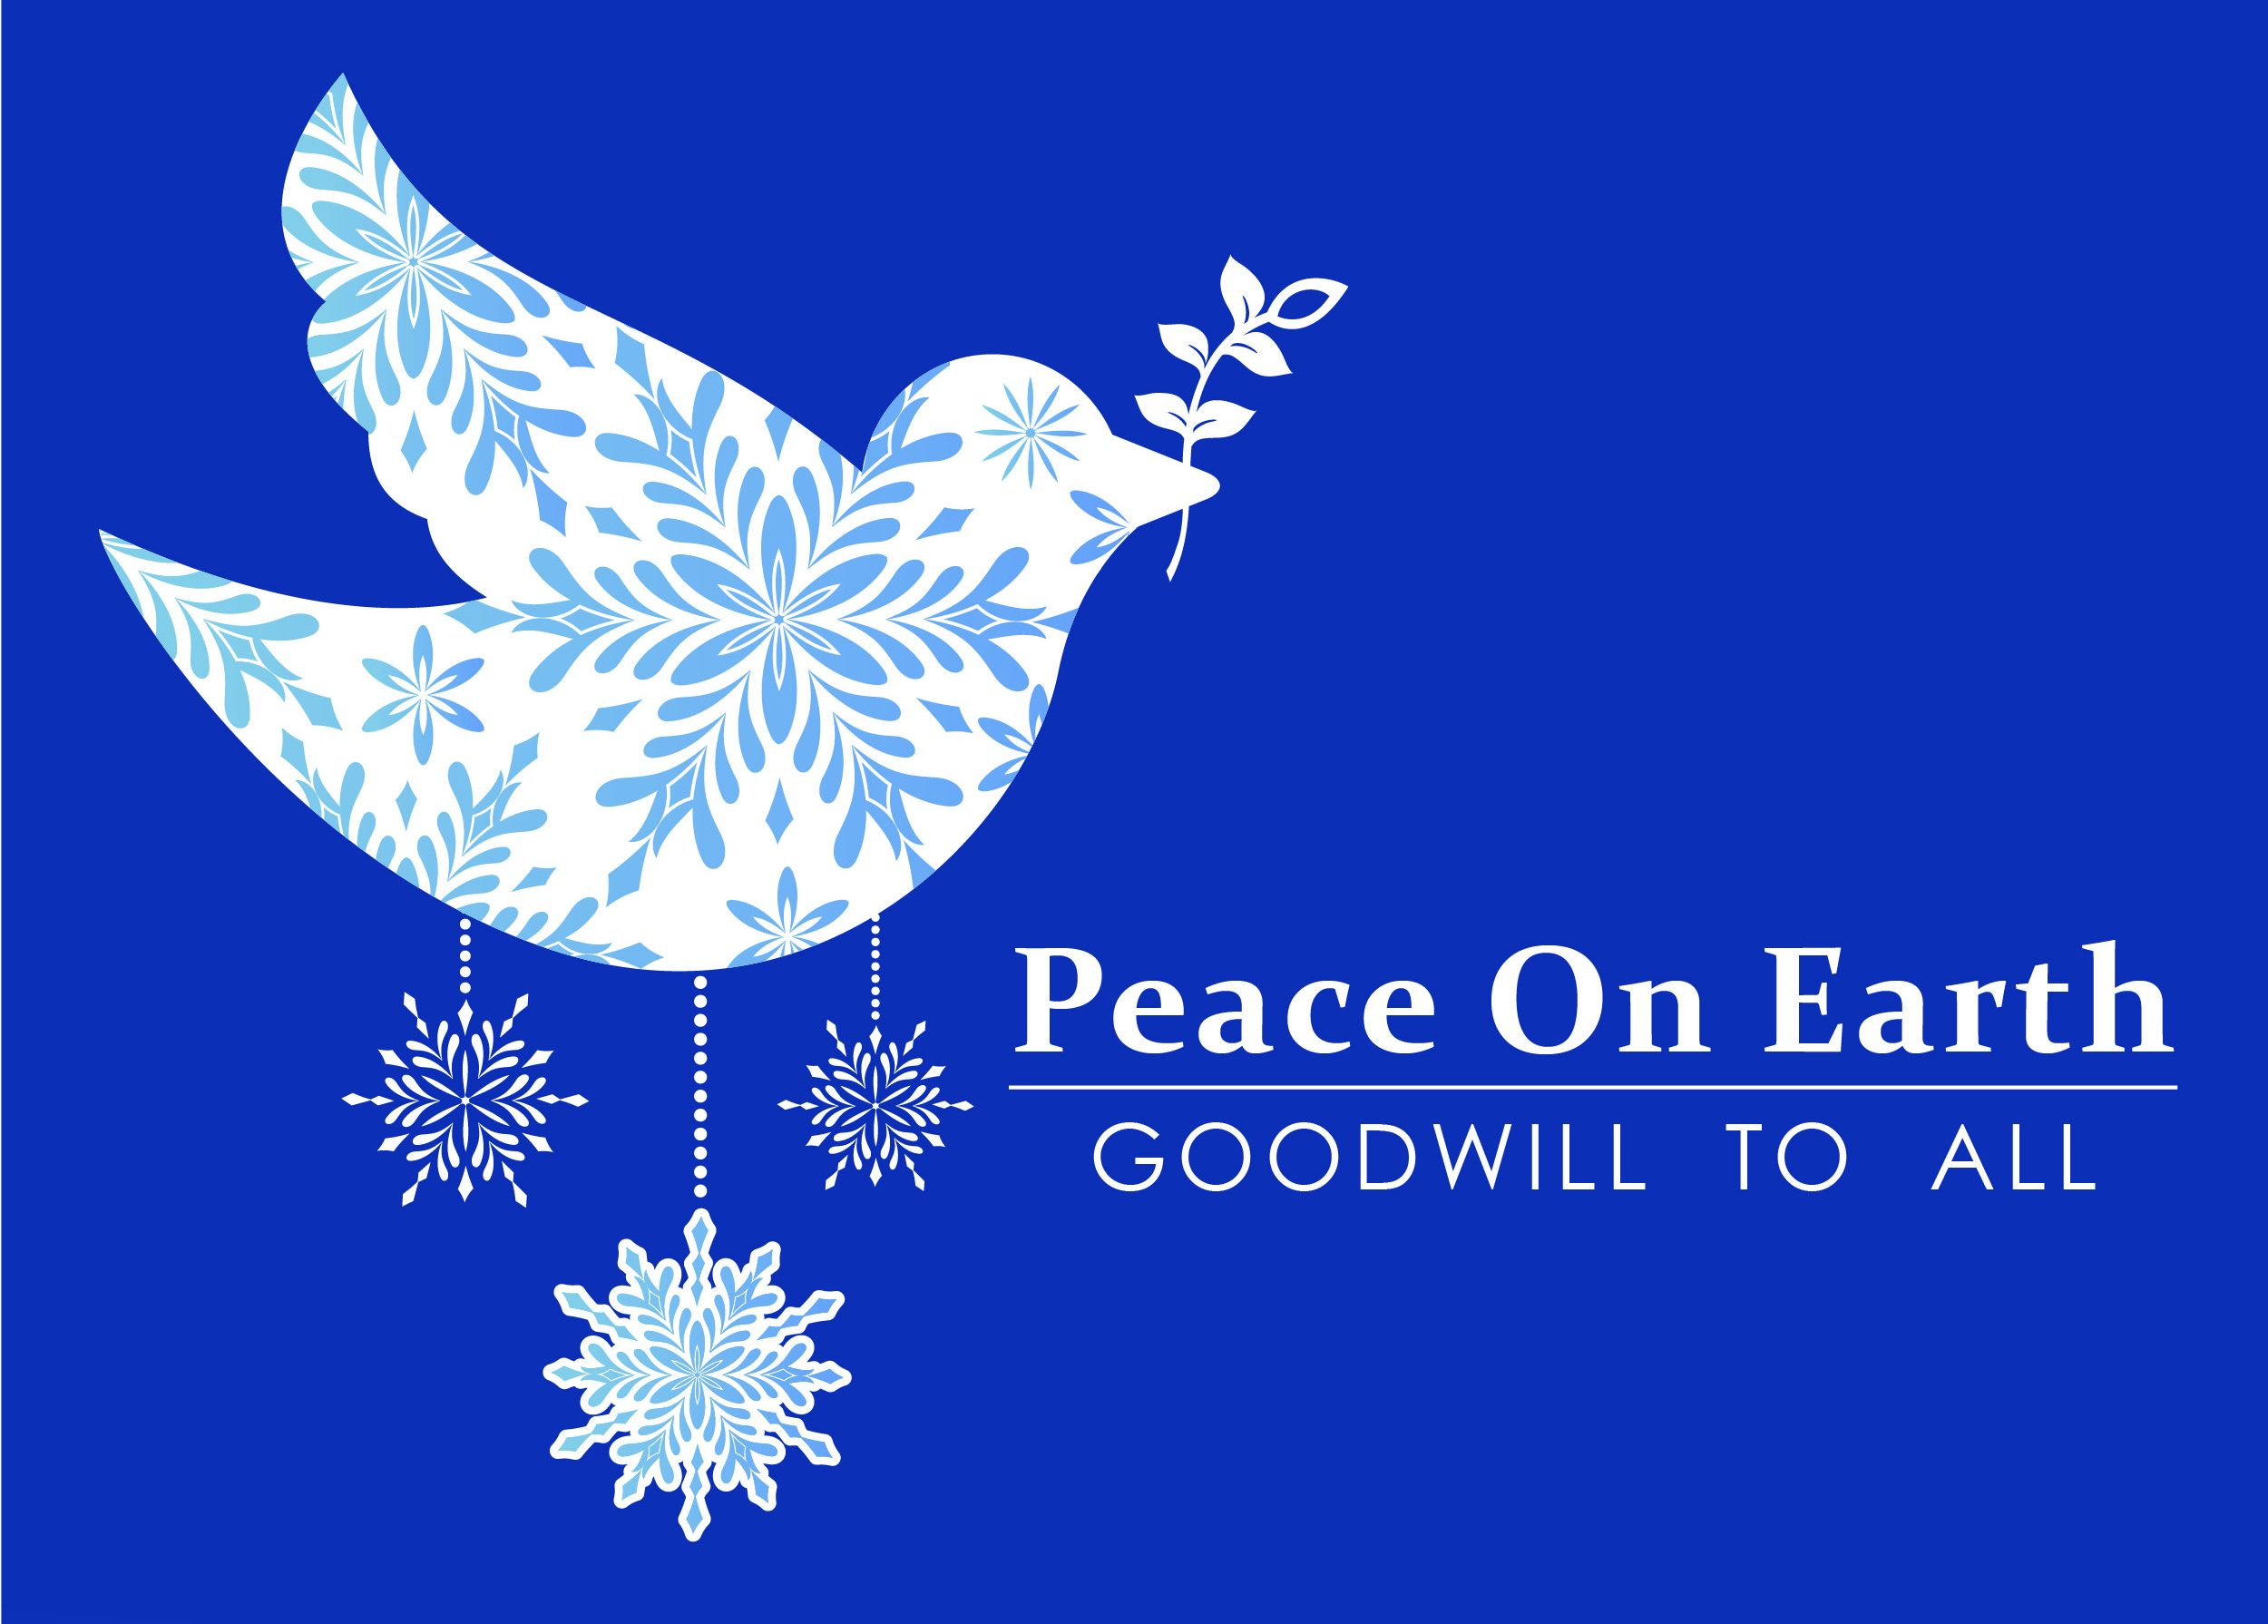 White Dove: Peace On Earth, Goodwill To All Image For Holiday Hours